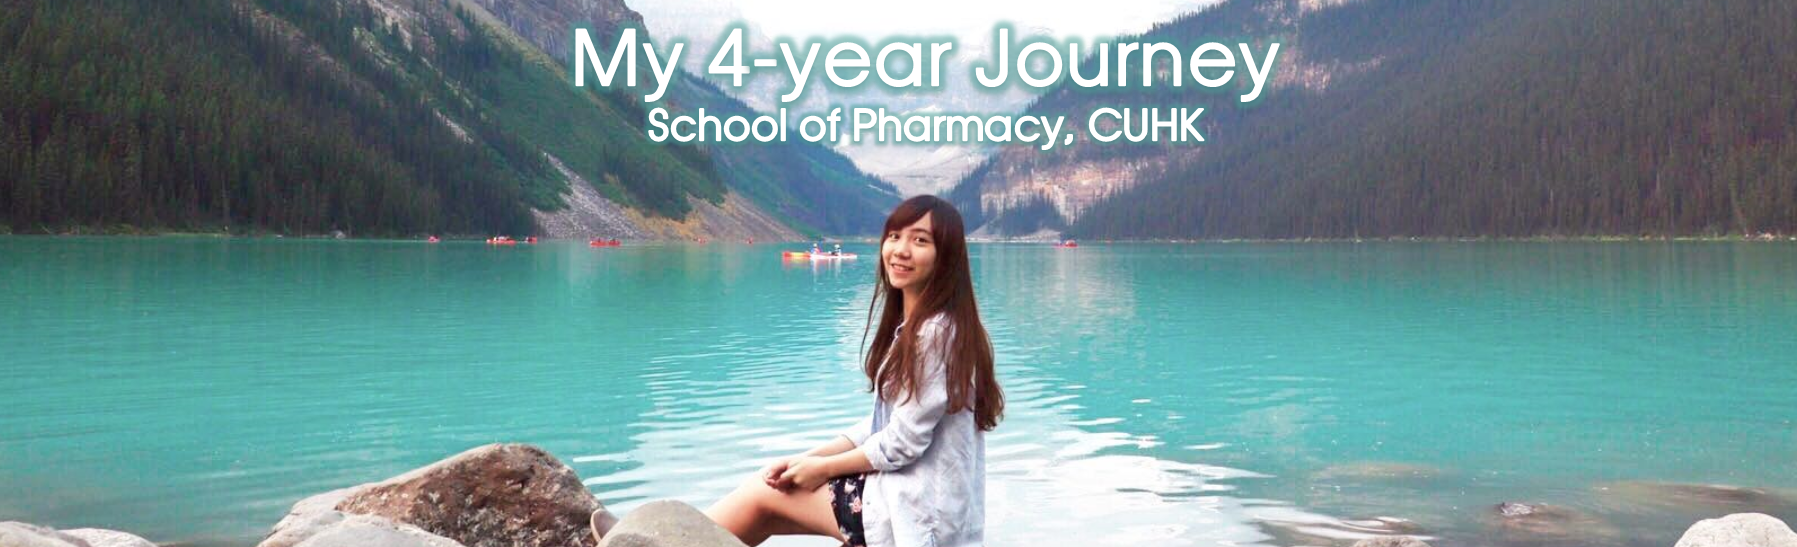 Students' Sharing – My 4-year Journey in School of Pharmacy, CUHK